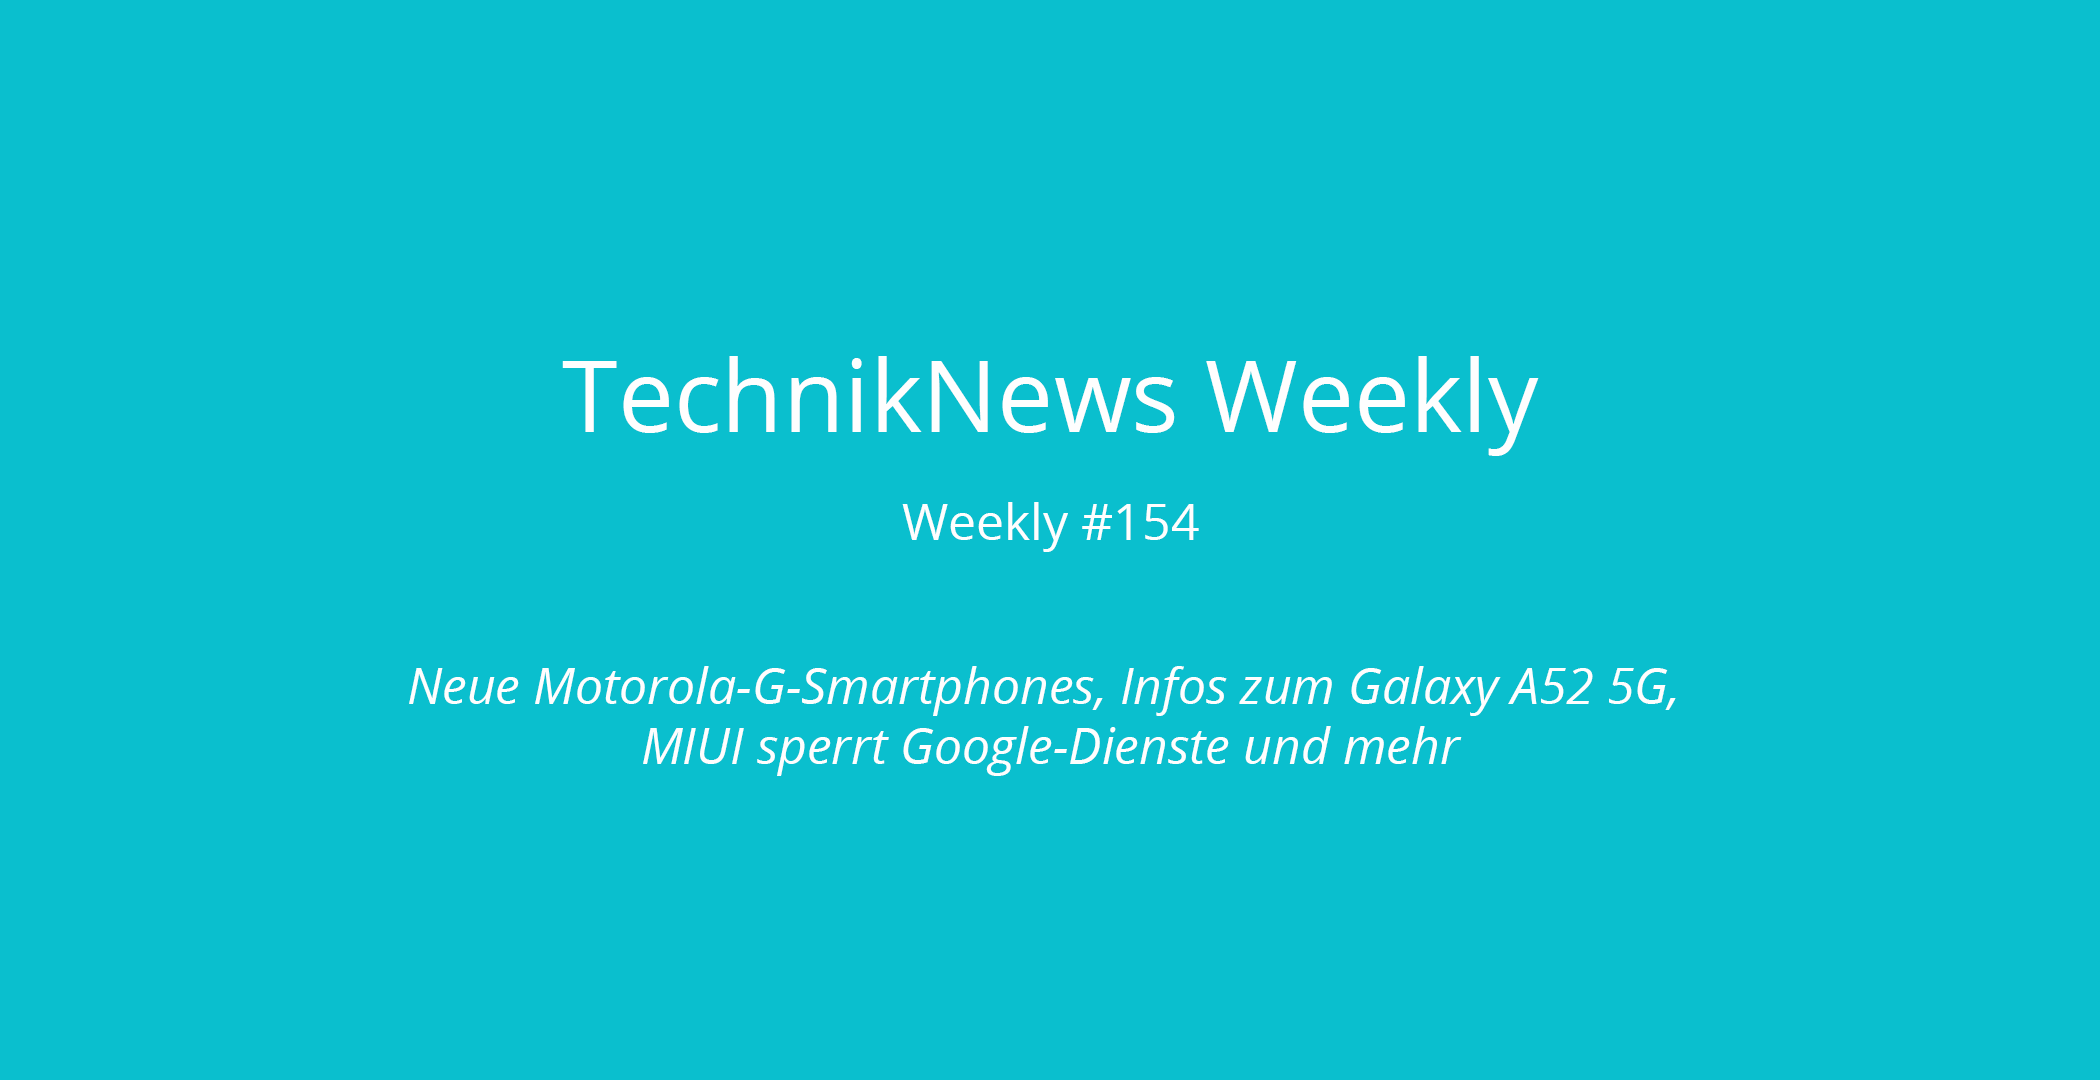 TechnikNews Weekly 154